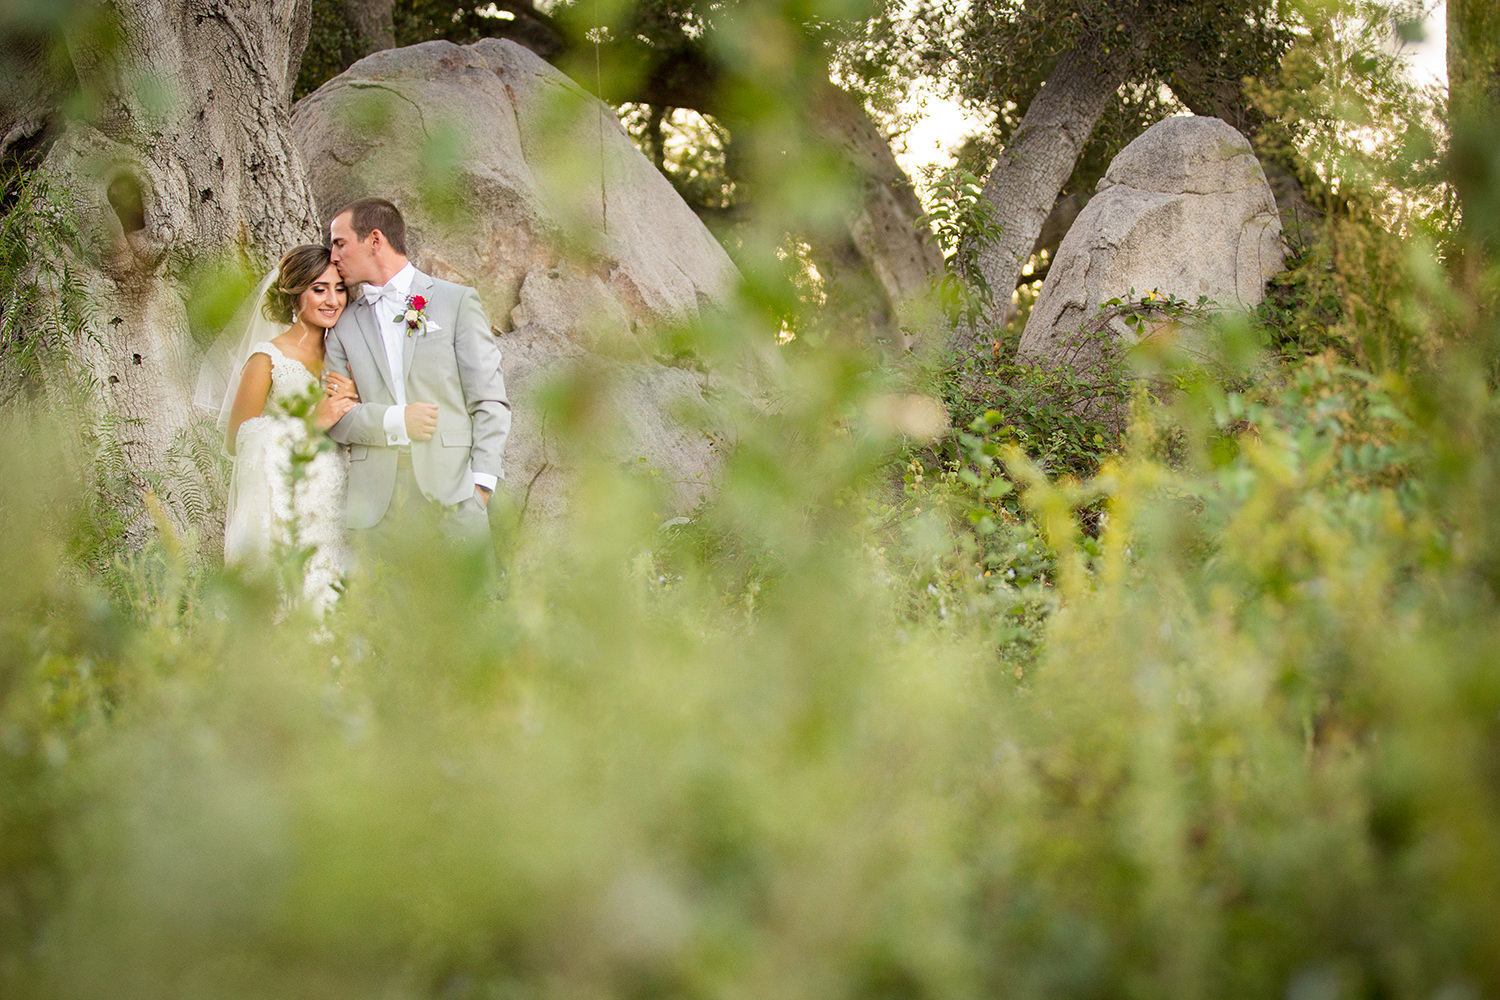 bride and groom kissing in a open field